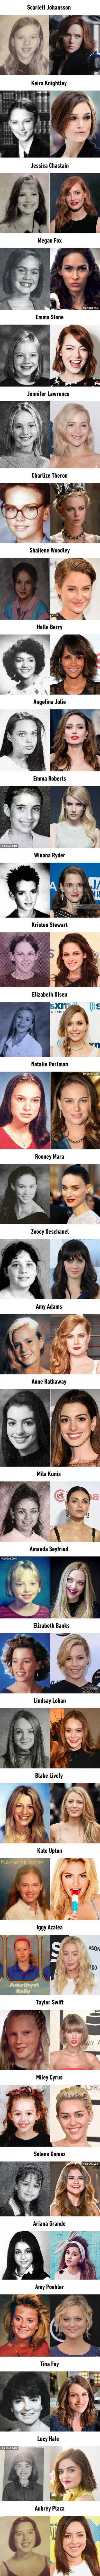 34 Female Celebrities' Yearbook Photos Prove There's Still Hope this is so cute!!